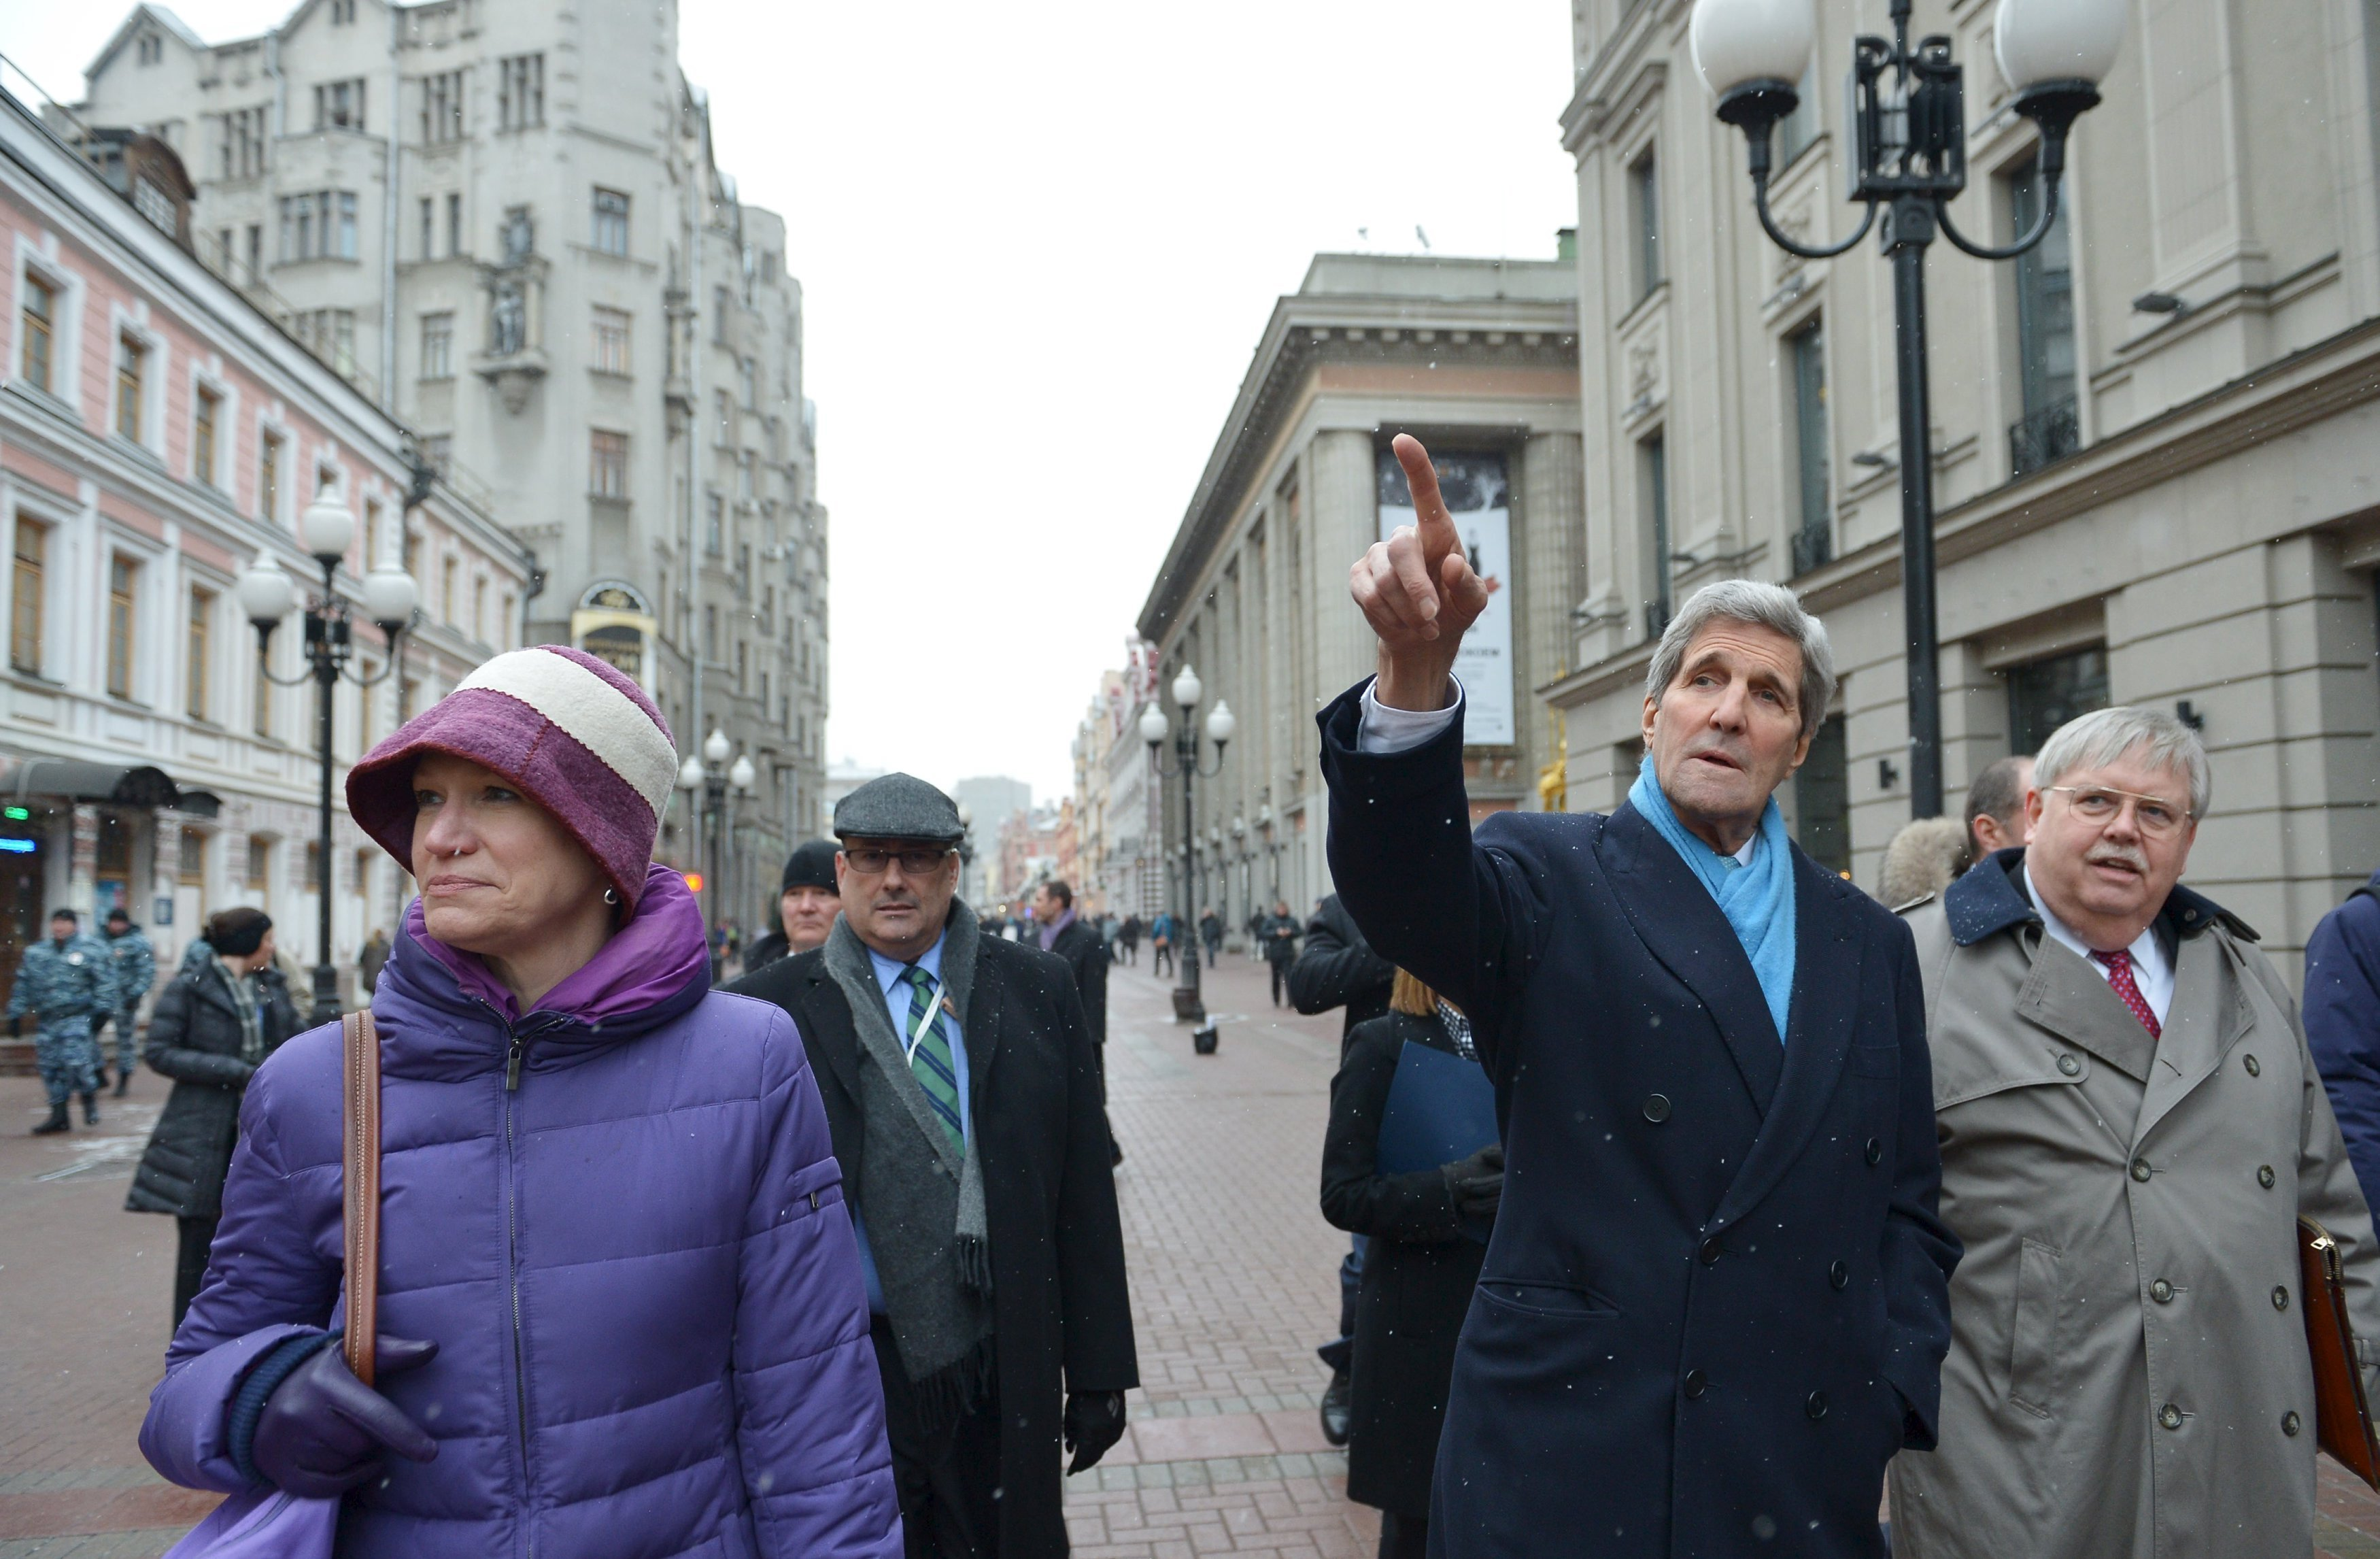 U.S. Secretary of State John Kerry (C) walks on Arbat Street while souvenir shopping with Celeste Wallander of the National Security Council (L) and U.S. Ambassador to Russia John Tefft (R) in Moscow on December 15, 2015